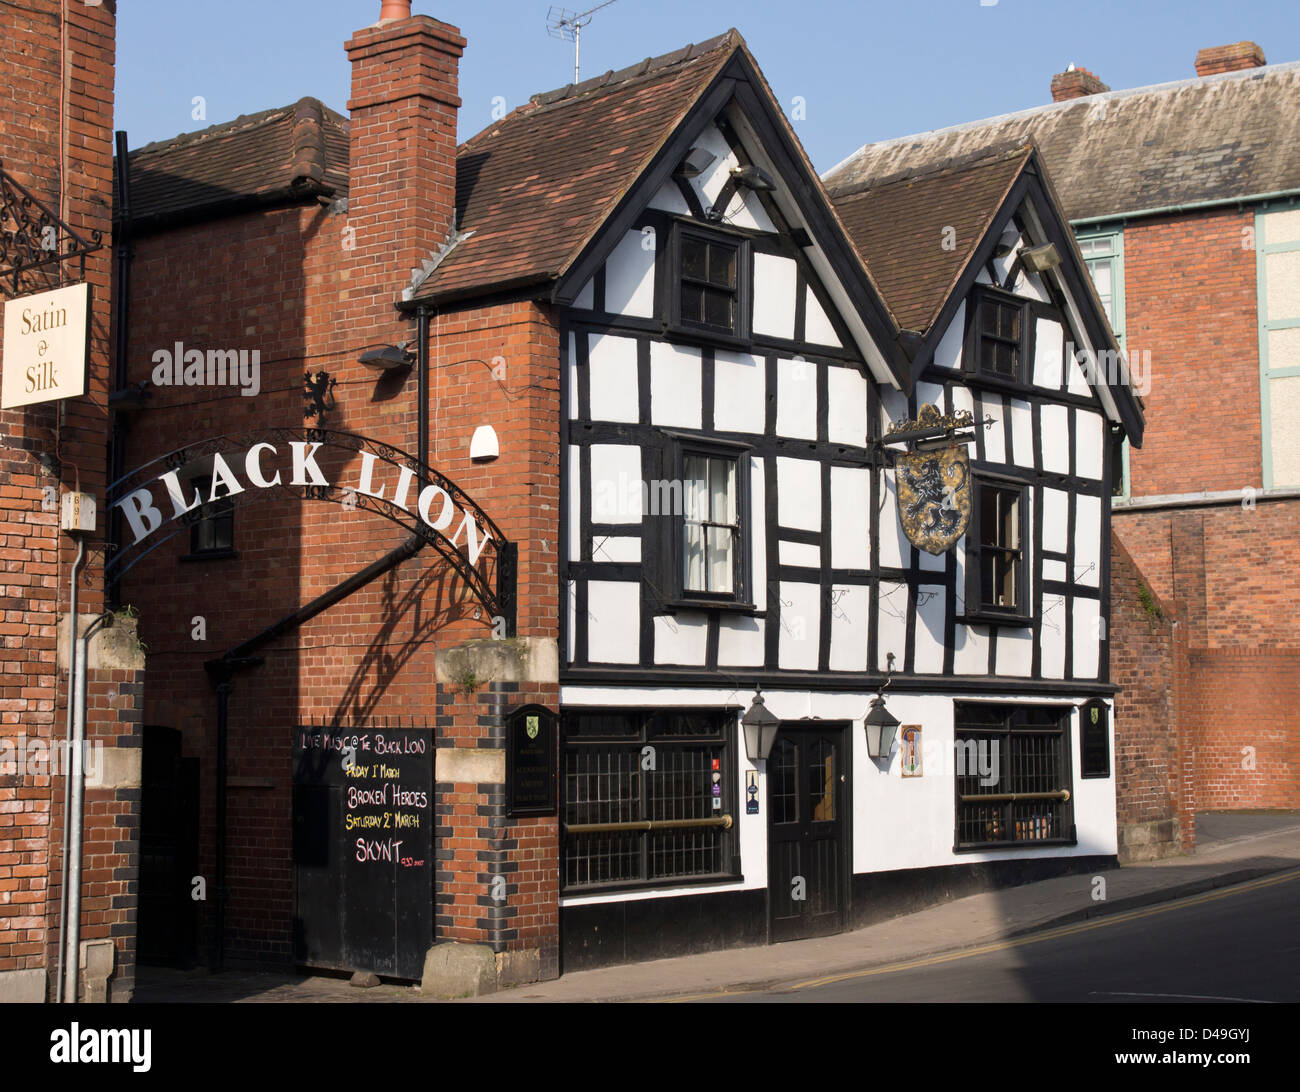 Hereford, The Black Lion Pub - Stock Image